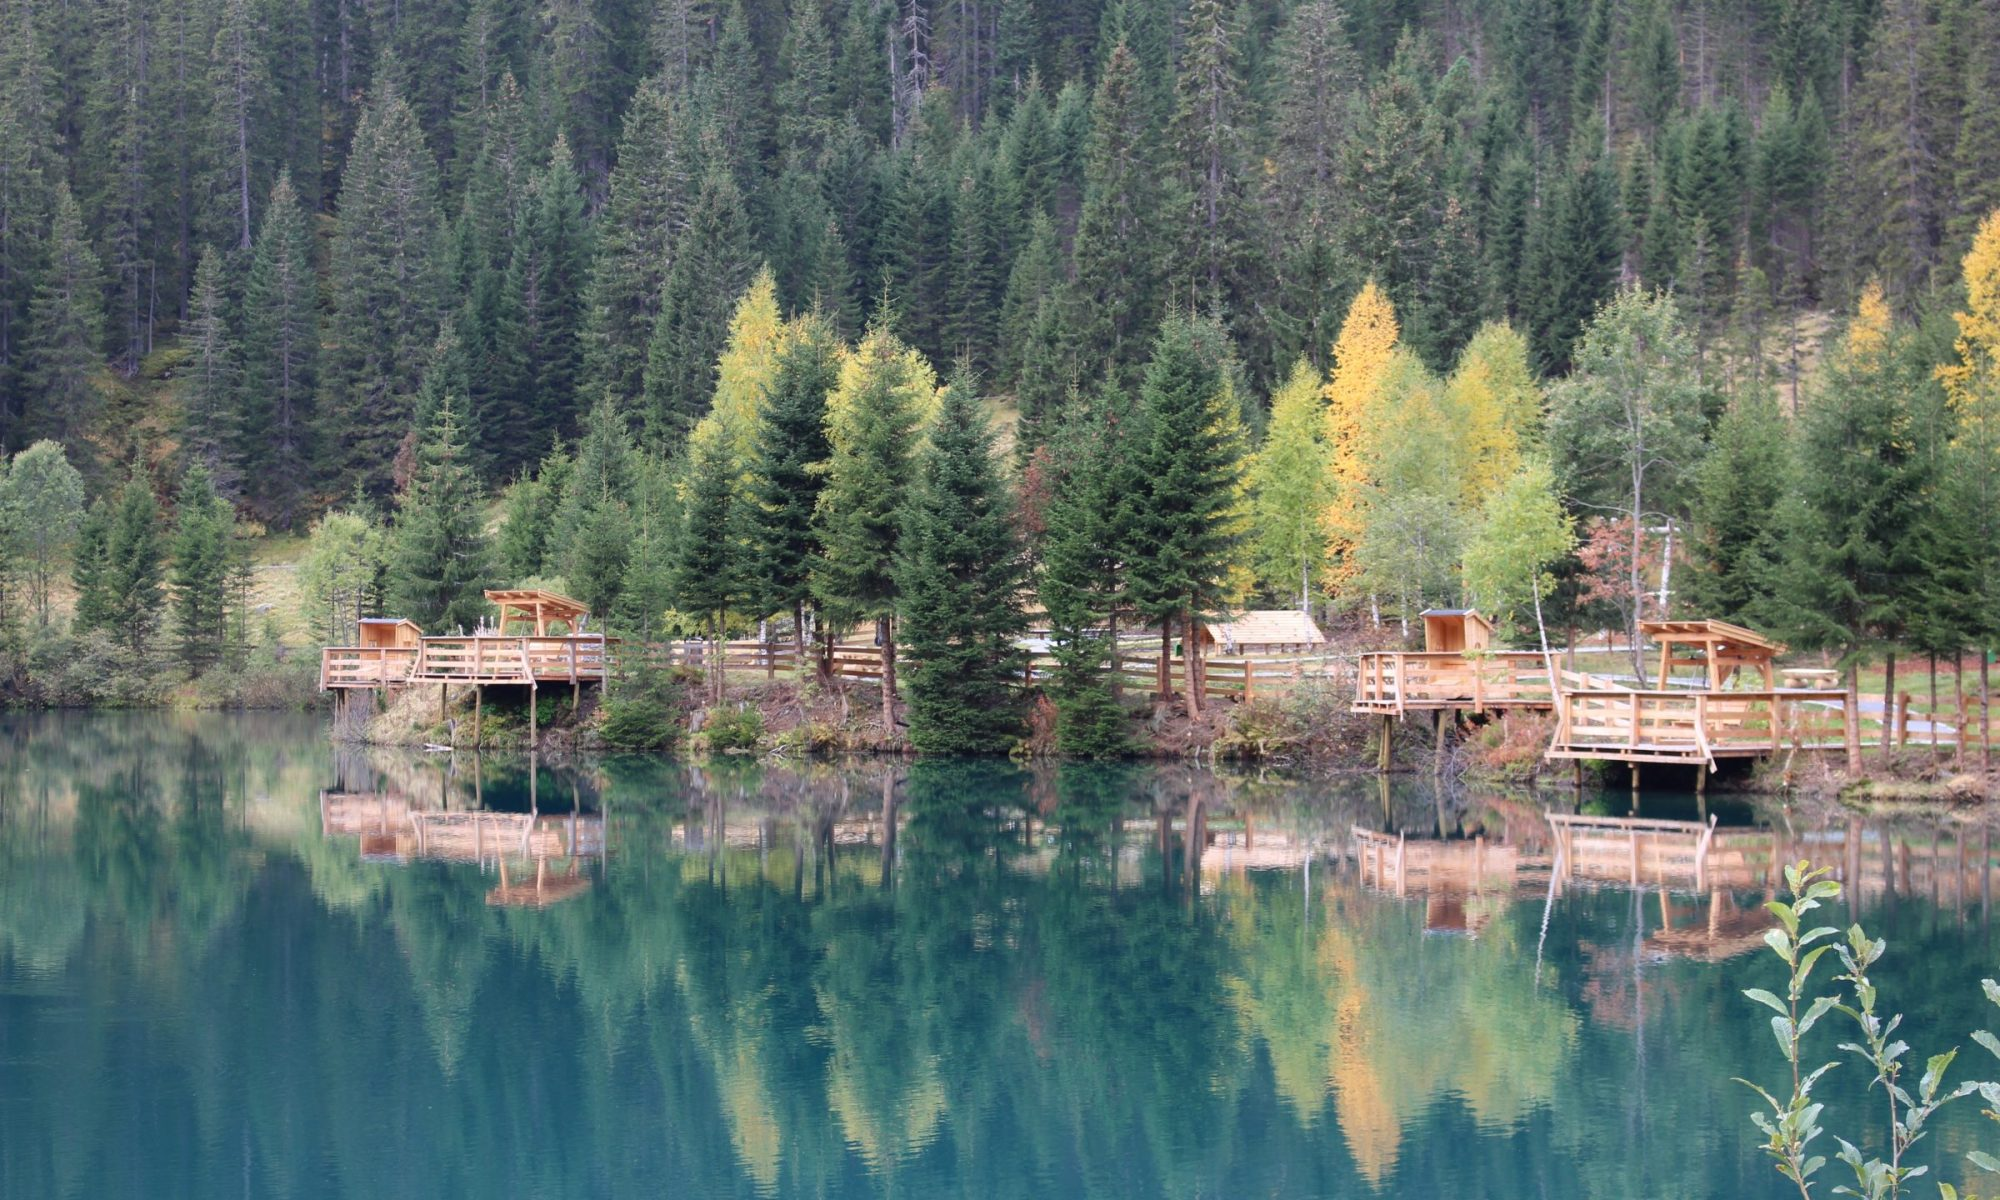 As if painted in water - the Verwallsee near St. Anton am Arlberg is known for its shimmering turquoise green Picture credits: TVB St. Anton am Arlberg